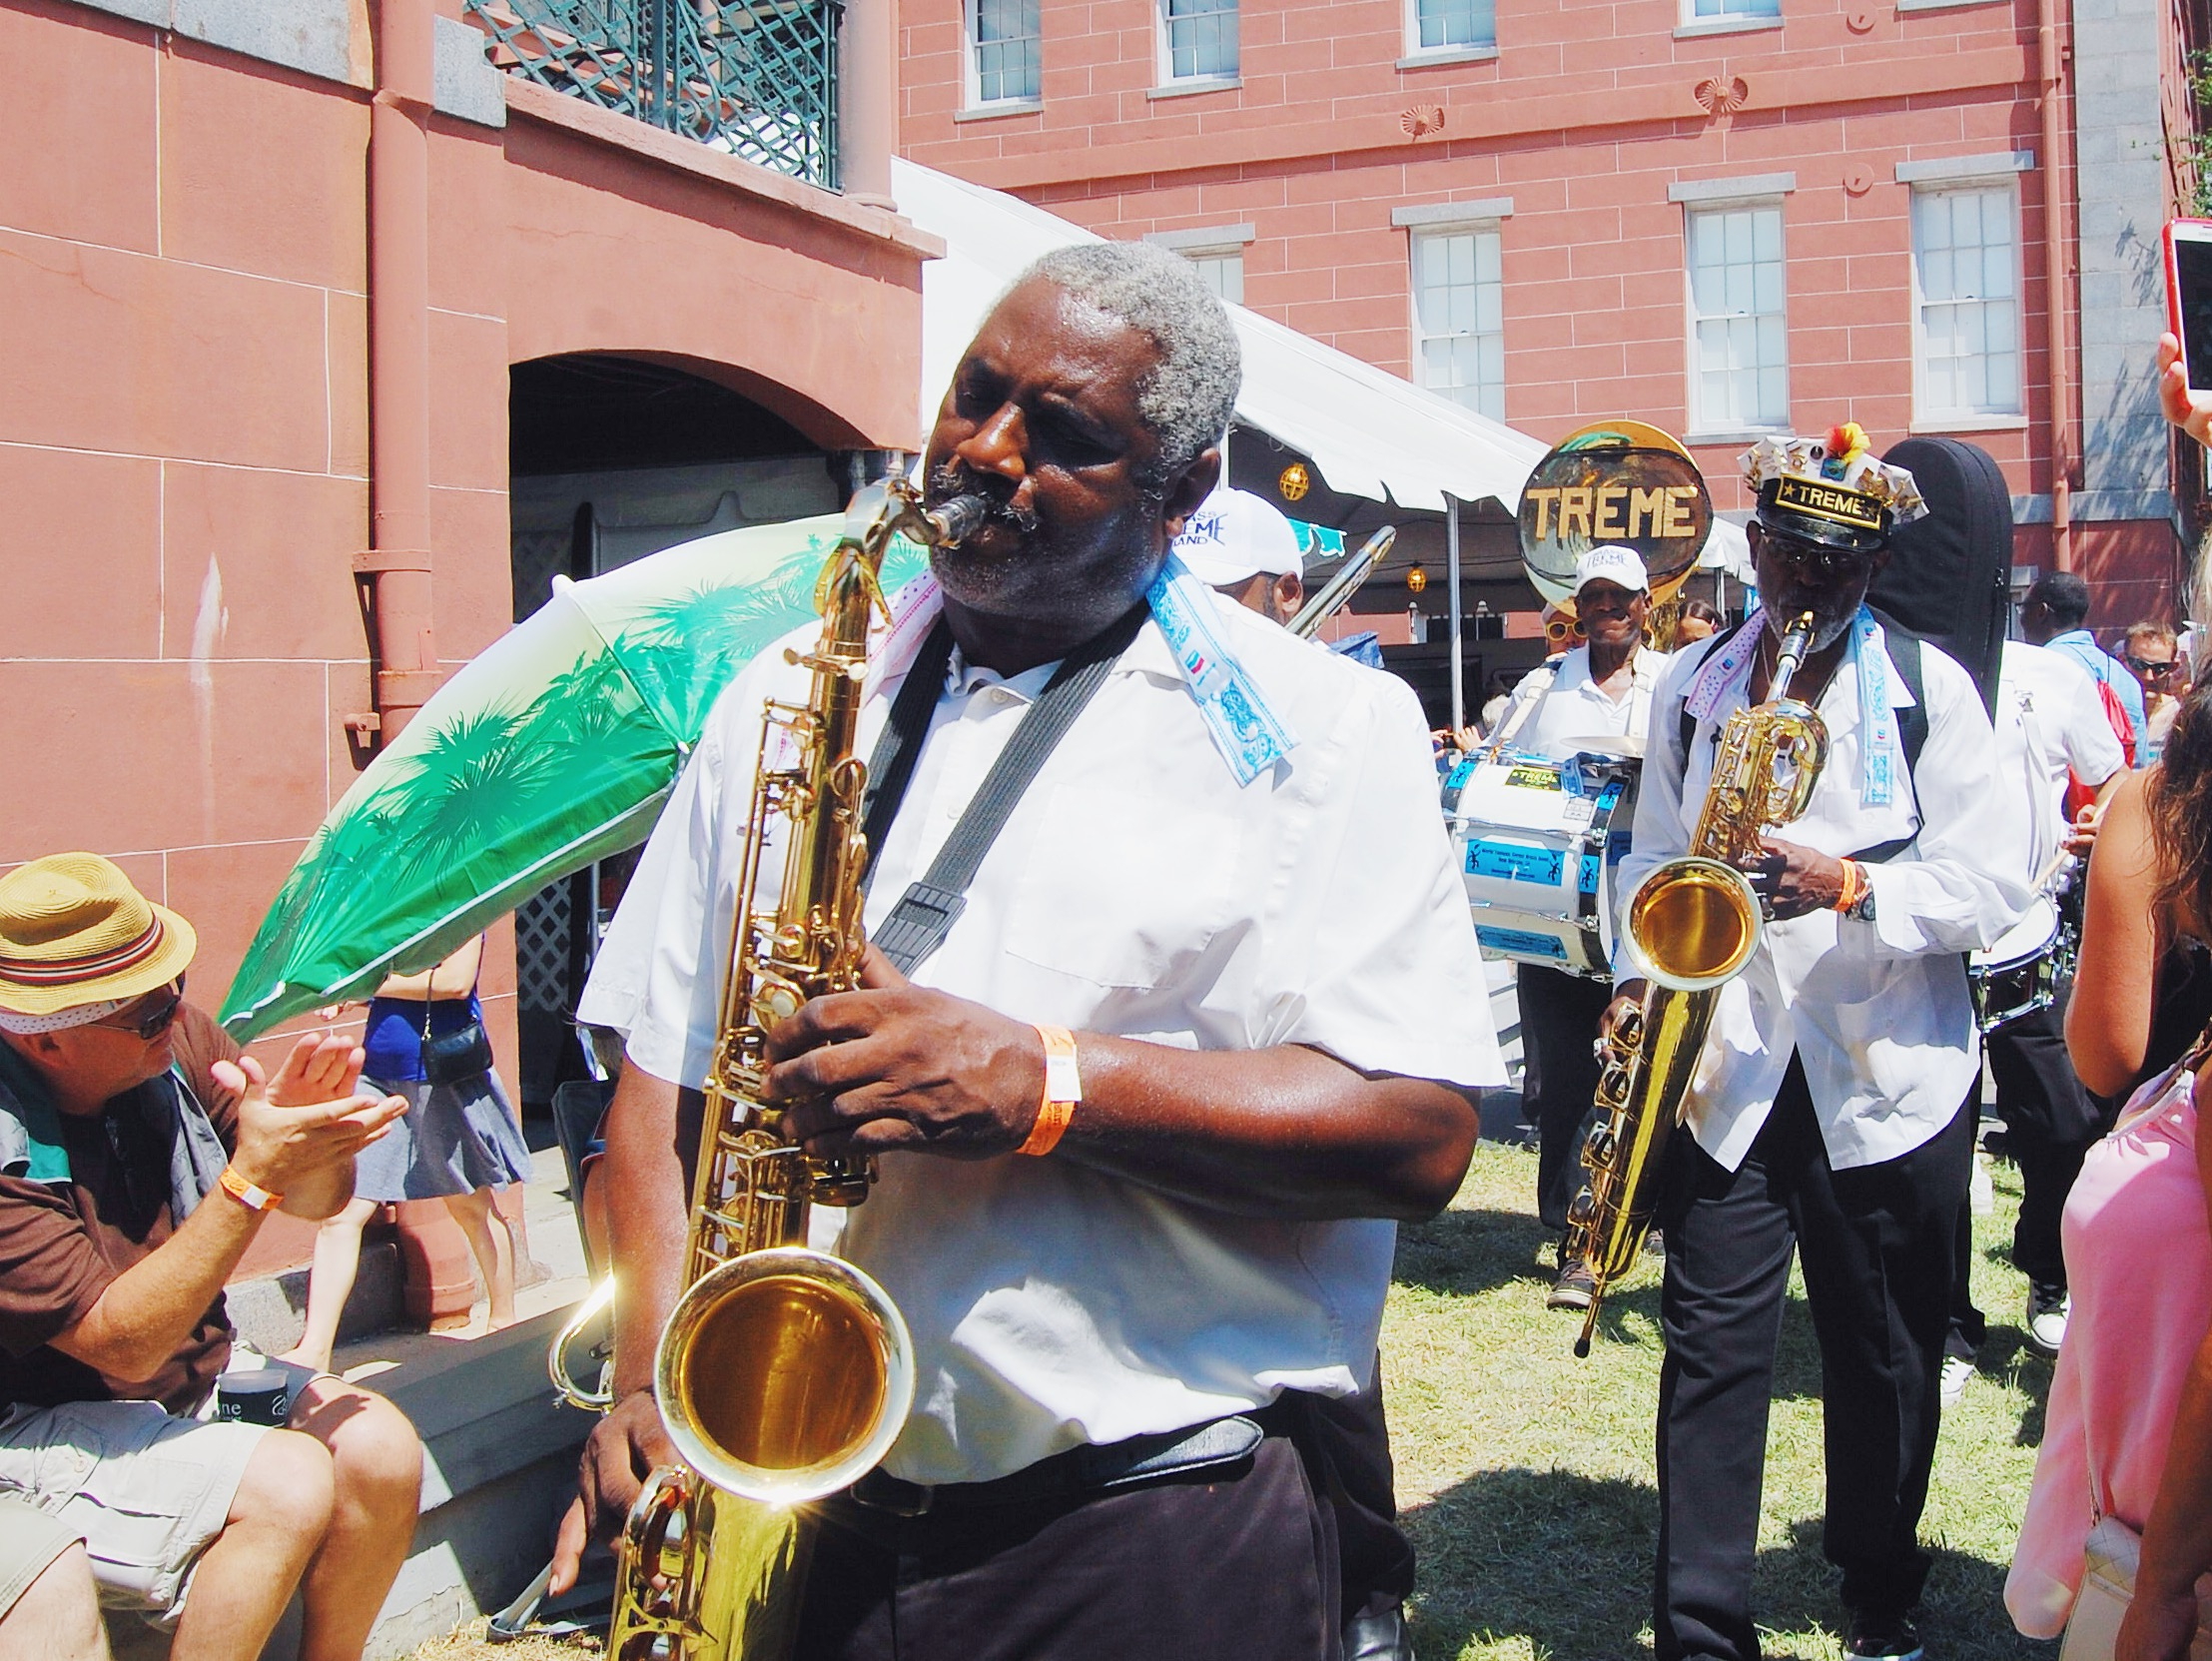 Treme Brass Band, New Orleans, LA